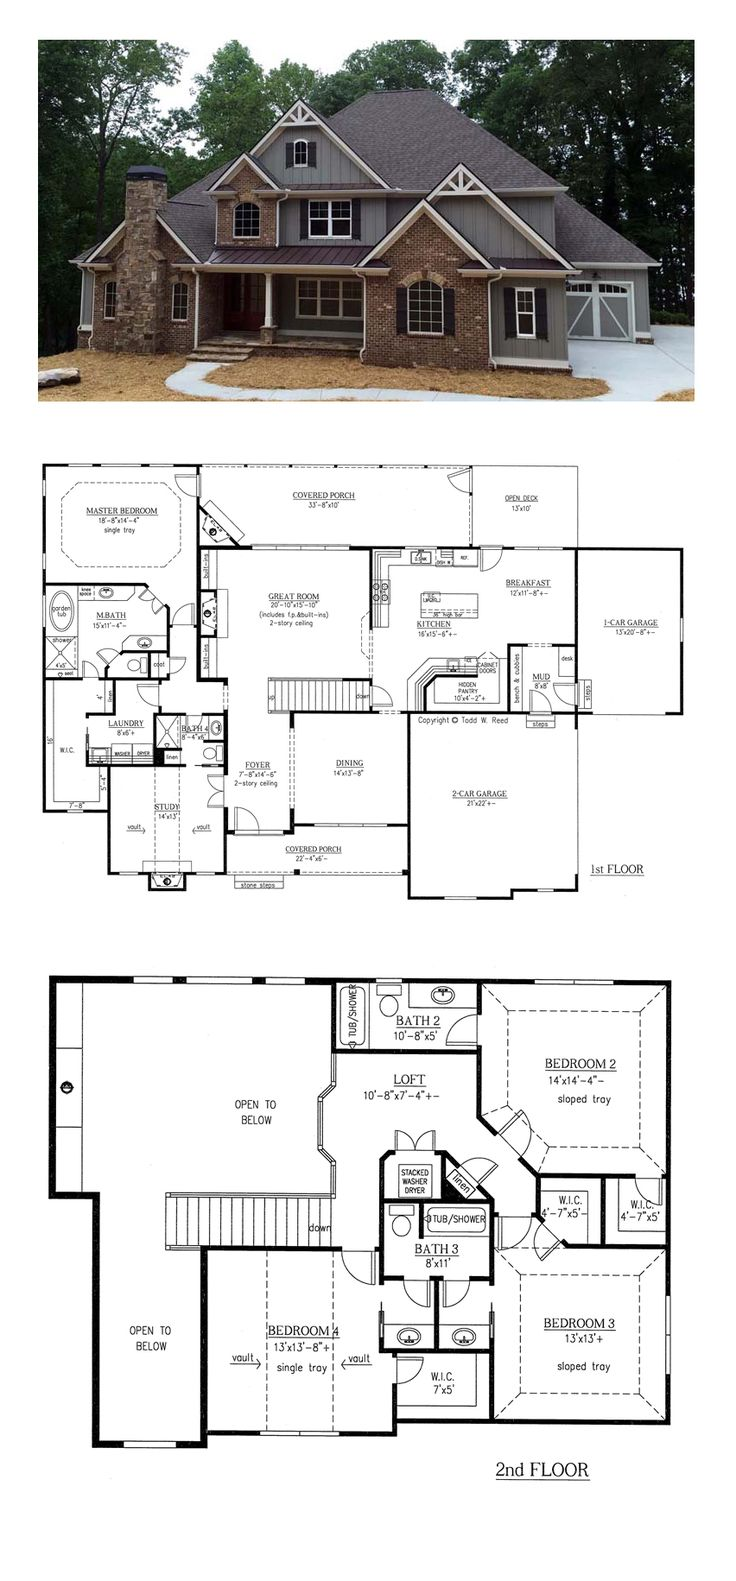 Best 25 dream house plans ideas on pinterest house for Country house designs